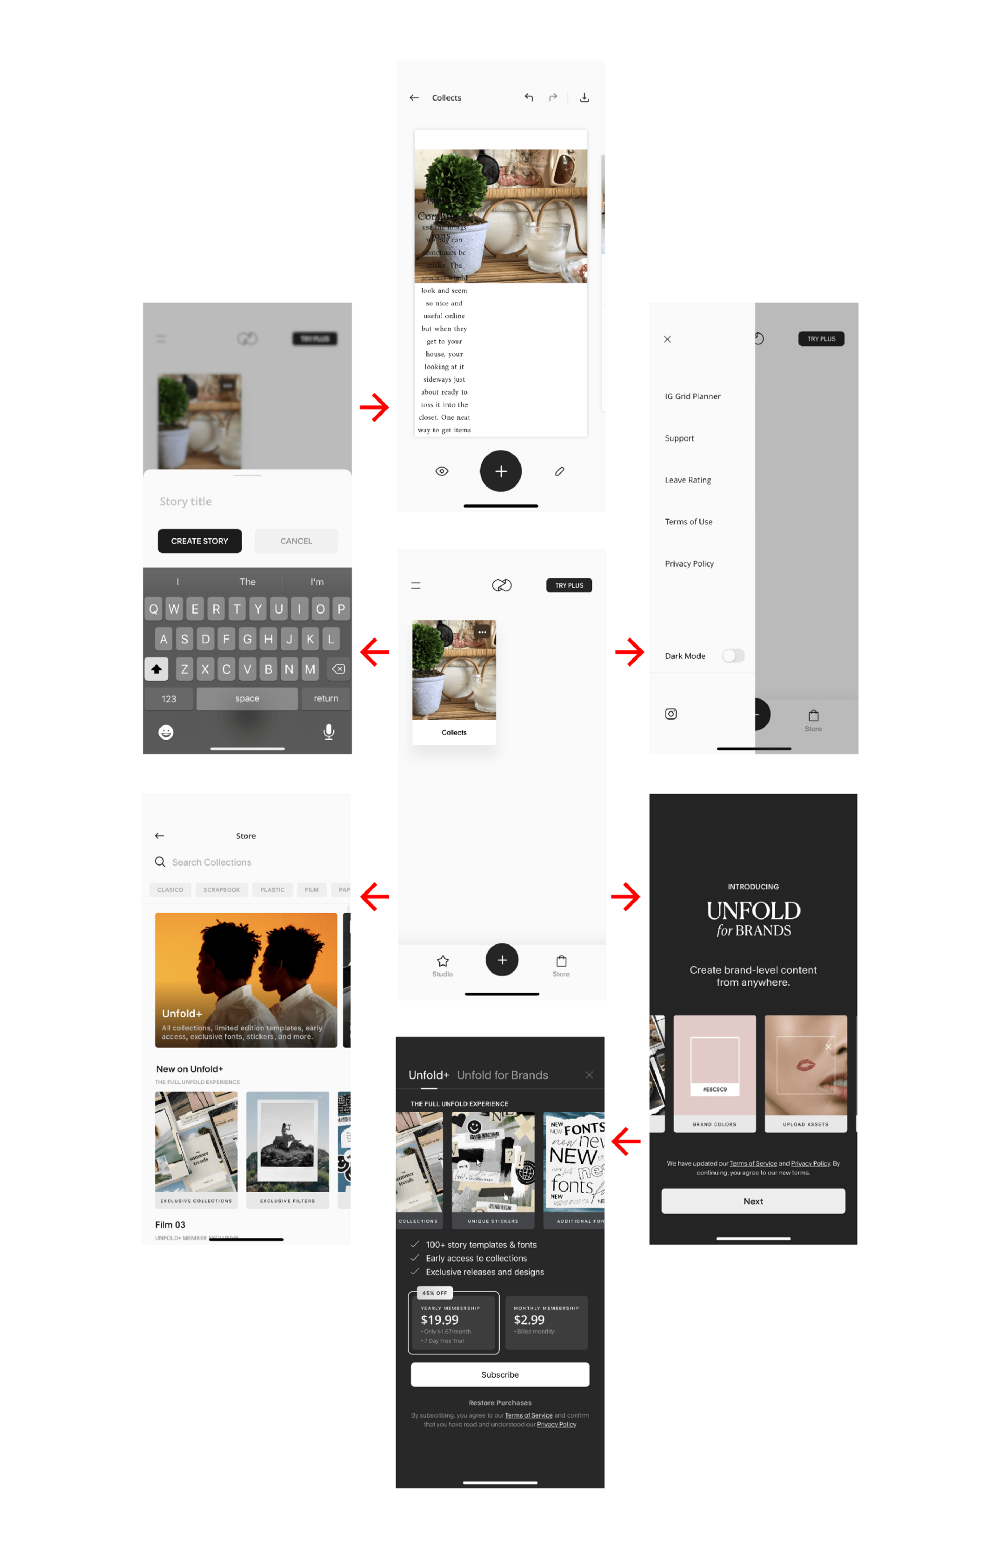 Screenshots of Unfold by Squarespace application